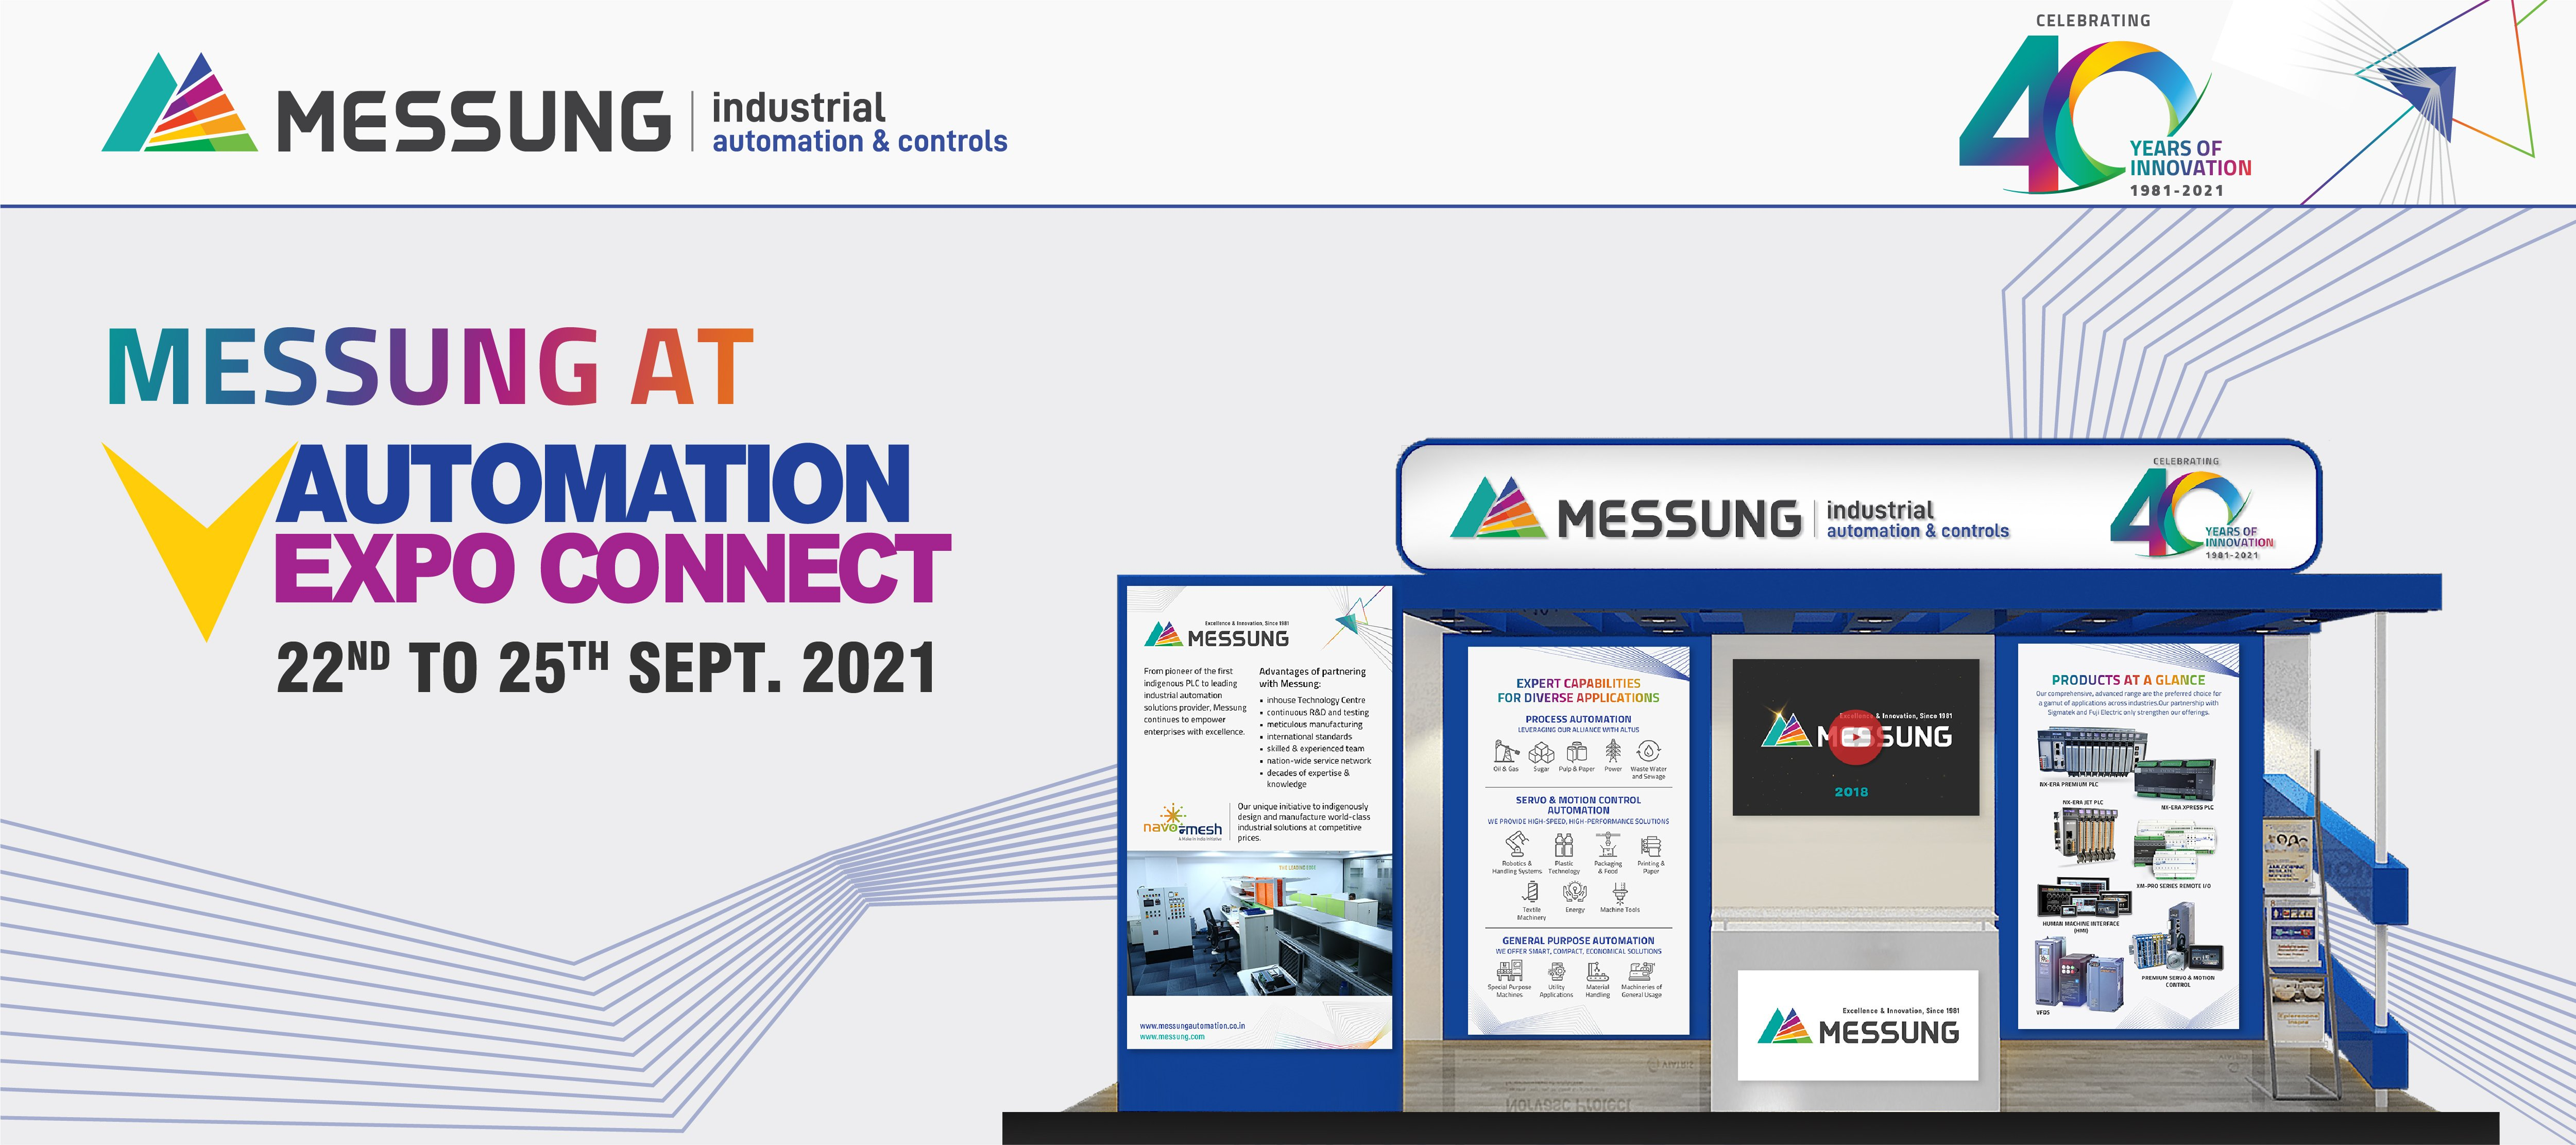 MESSUNG AT AUTOMATION EXPO CONNECT 2021